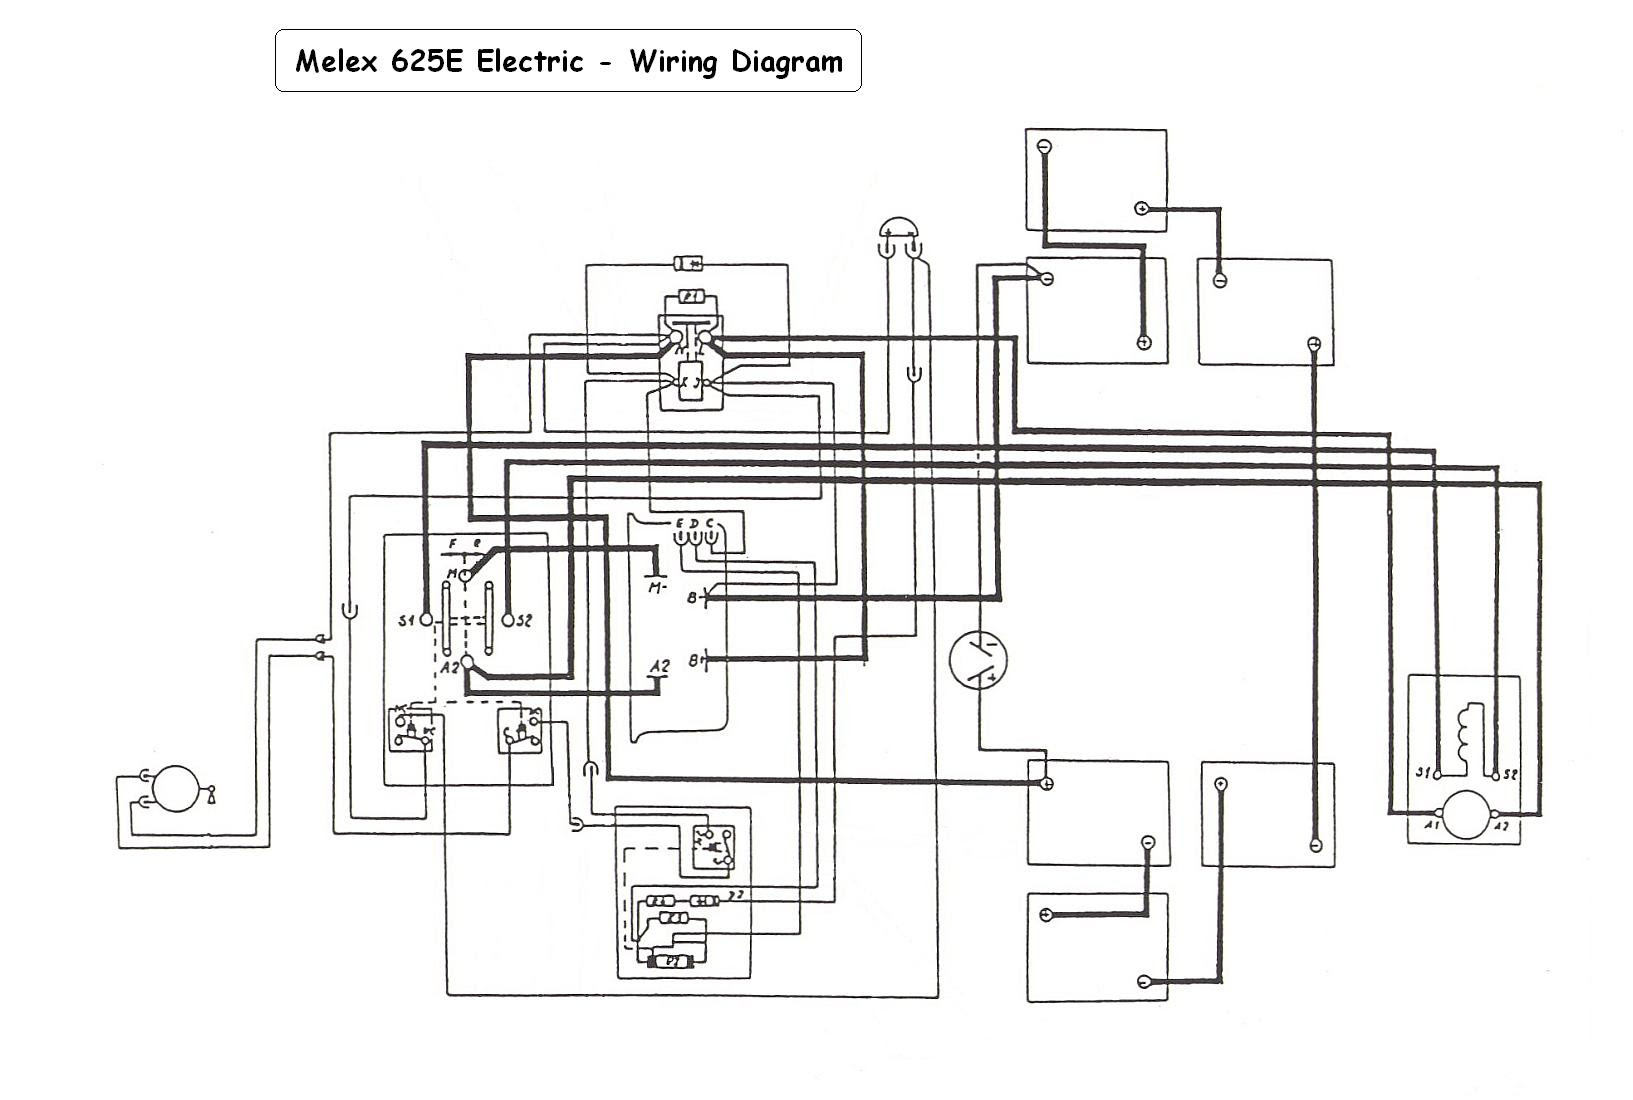 Otis Elevator Wiring Schematic Corvette Wiring Diagrams Free Begeboy Wiring Diagram Source